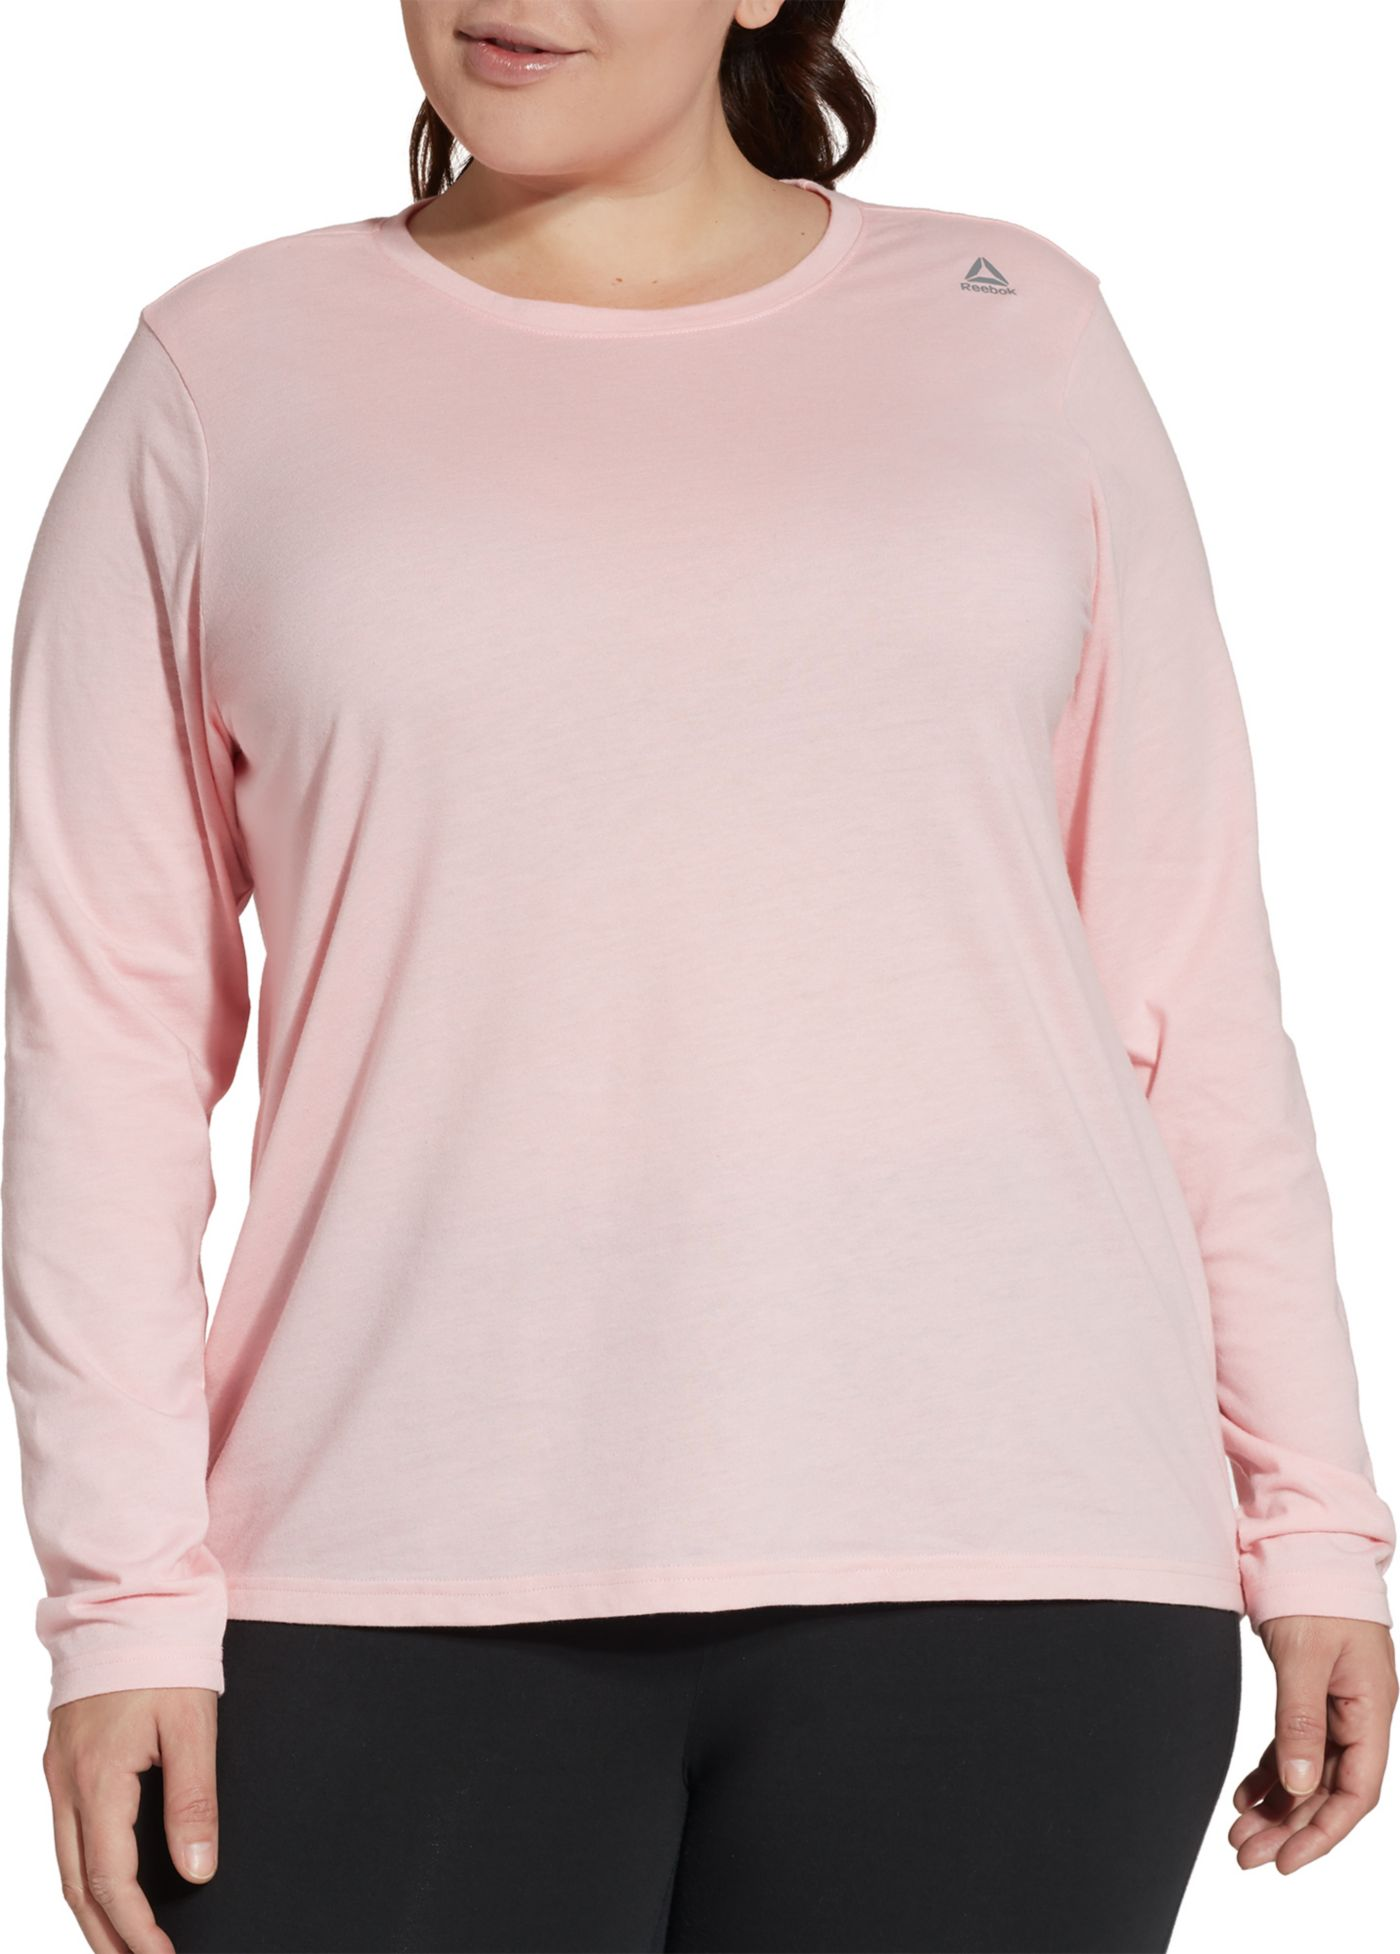 Reebok Women's Plus Size Core Cotton Jersey Long Sleeve Shirt